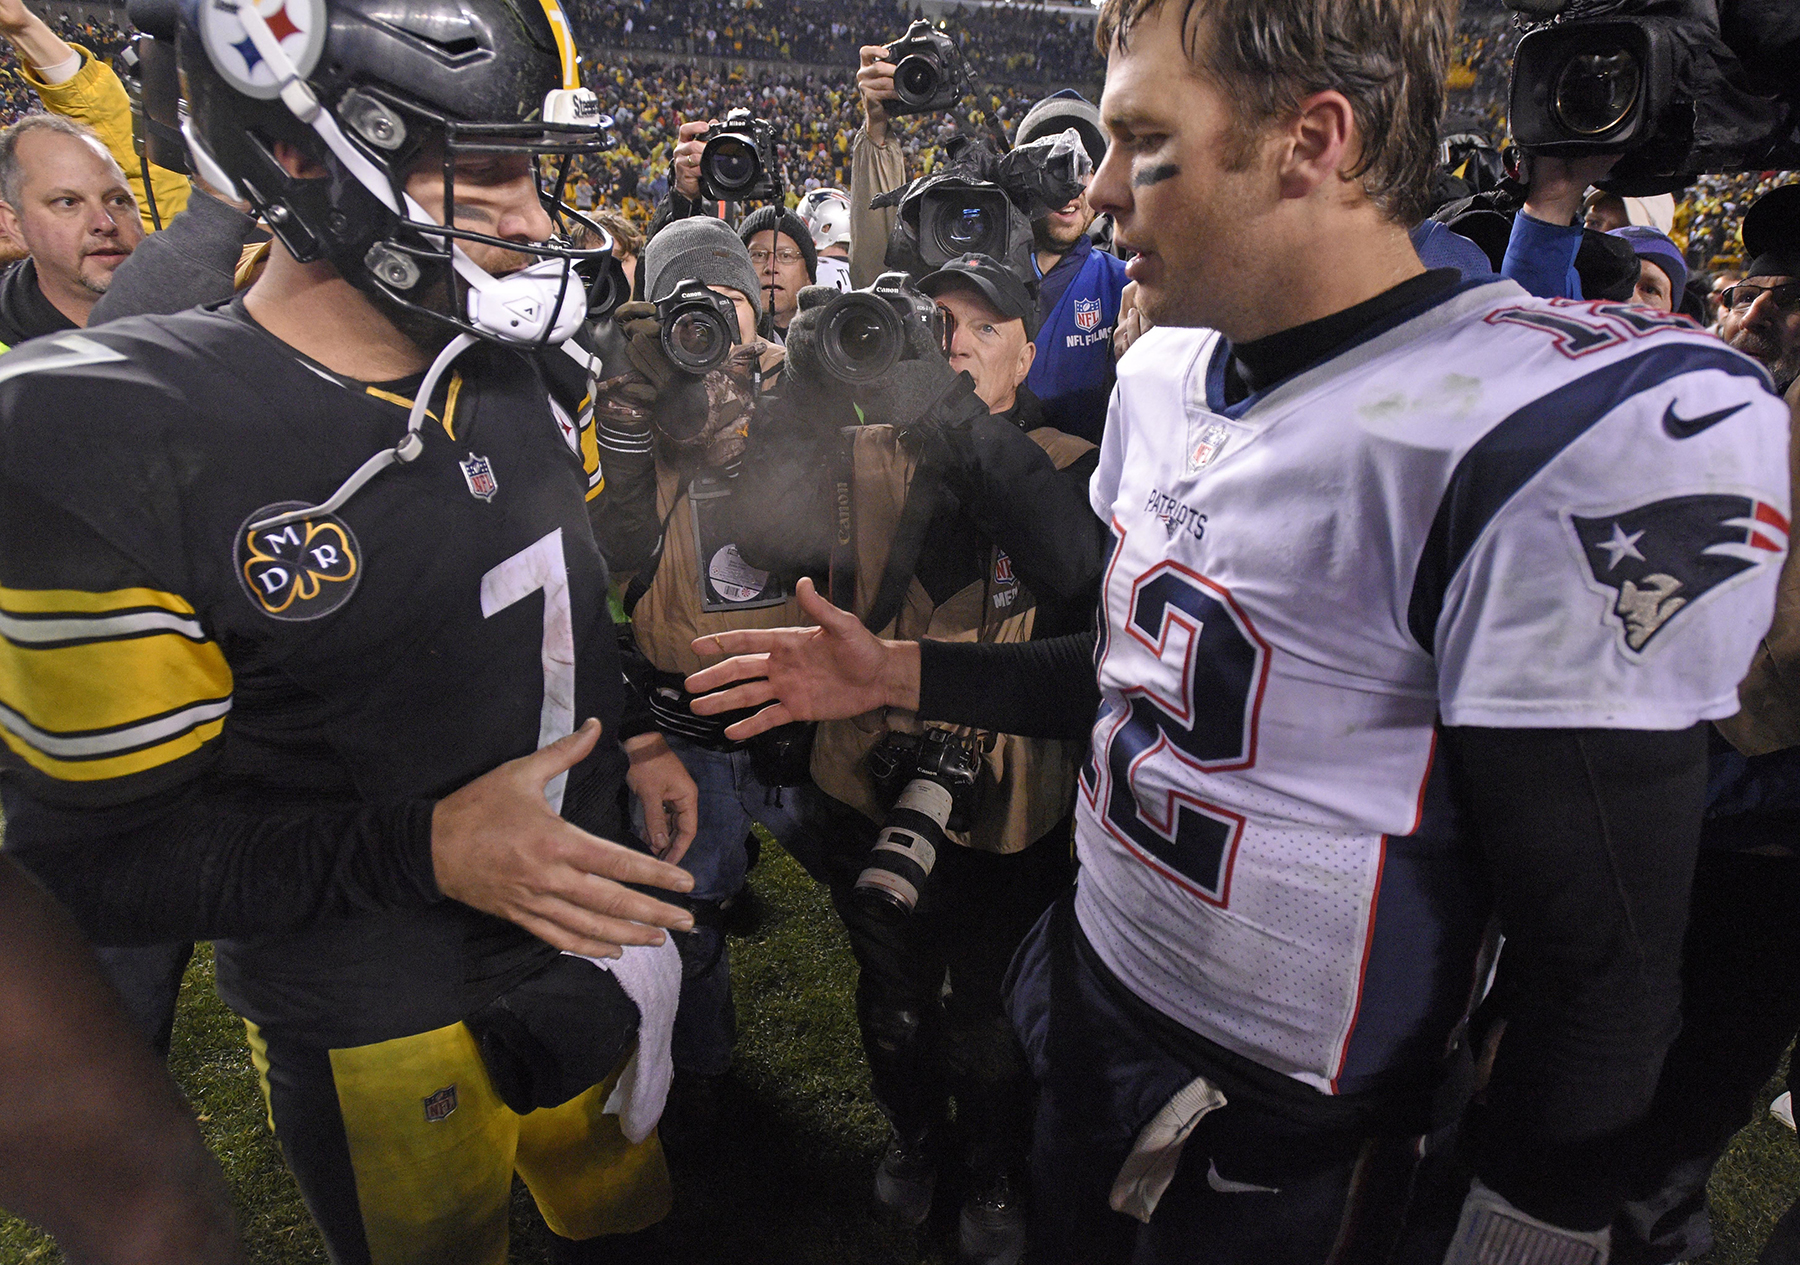 5199ccbf1d9 17, 2017, file photo, Pittsburgh Steelers quarterback Ben Roethlisberger (7)  and New England Patriots quarterback Tom Brady (12) meet on the field  following ...